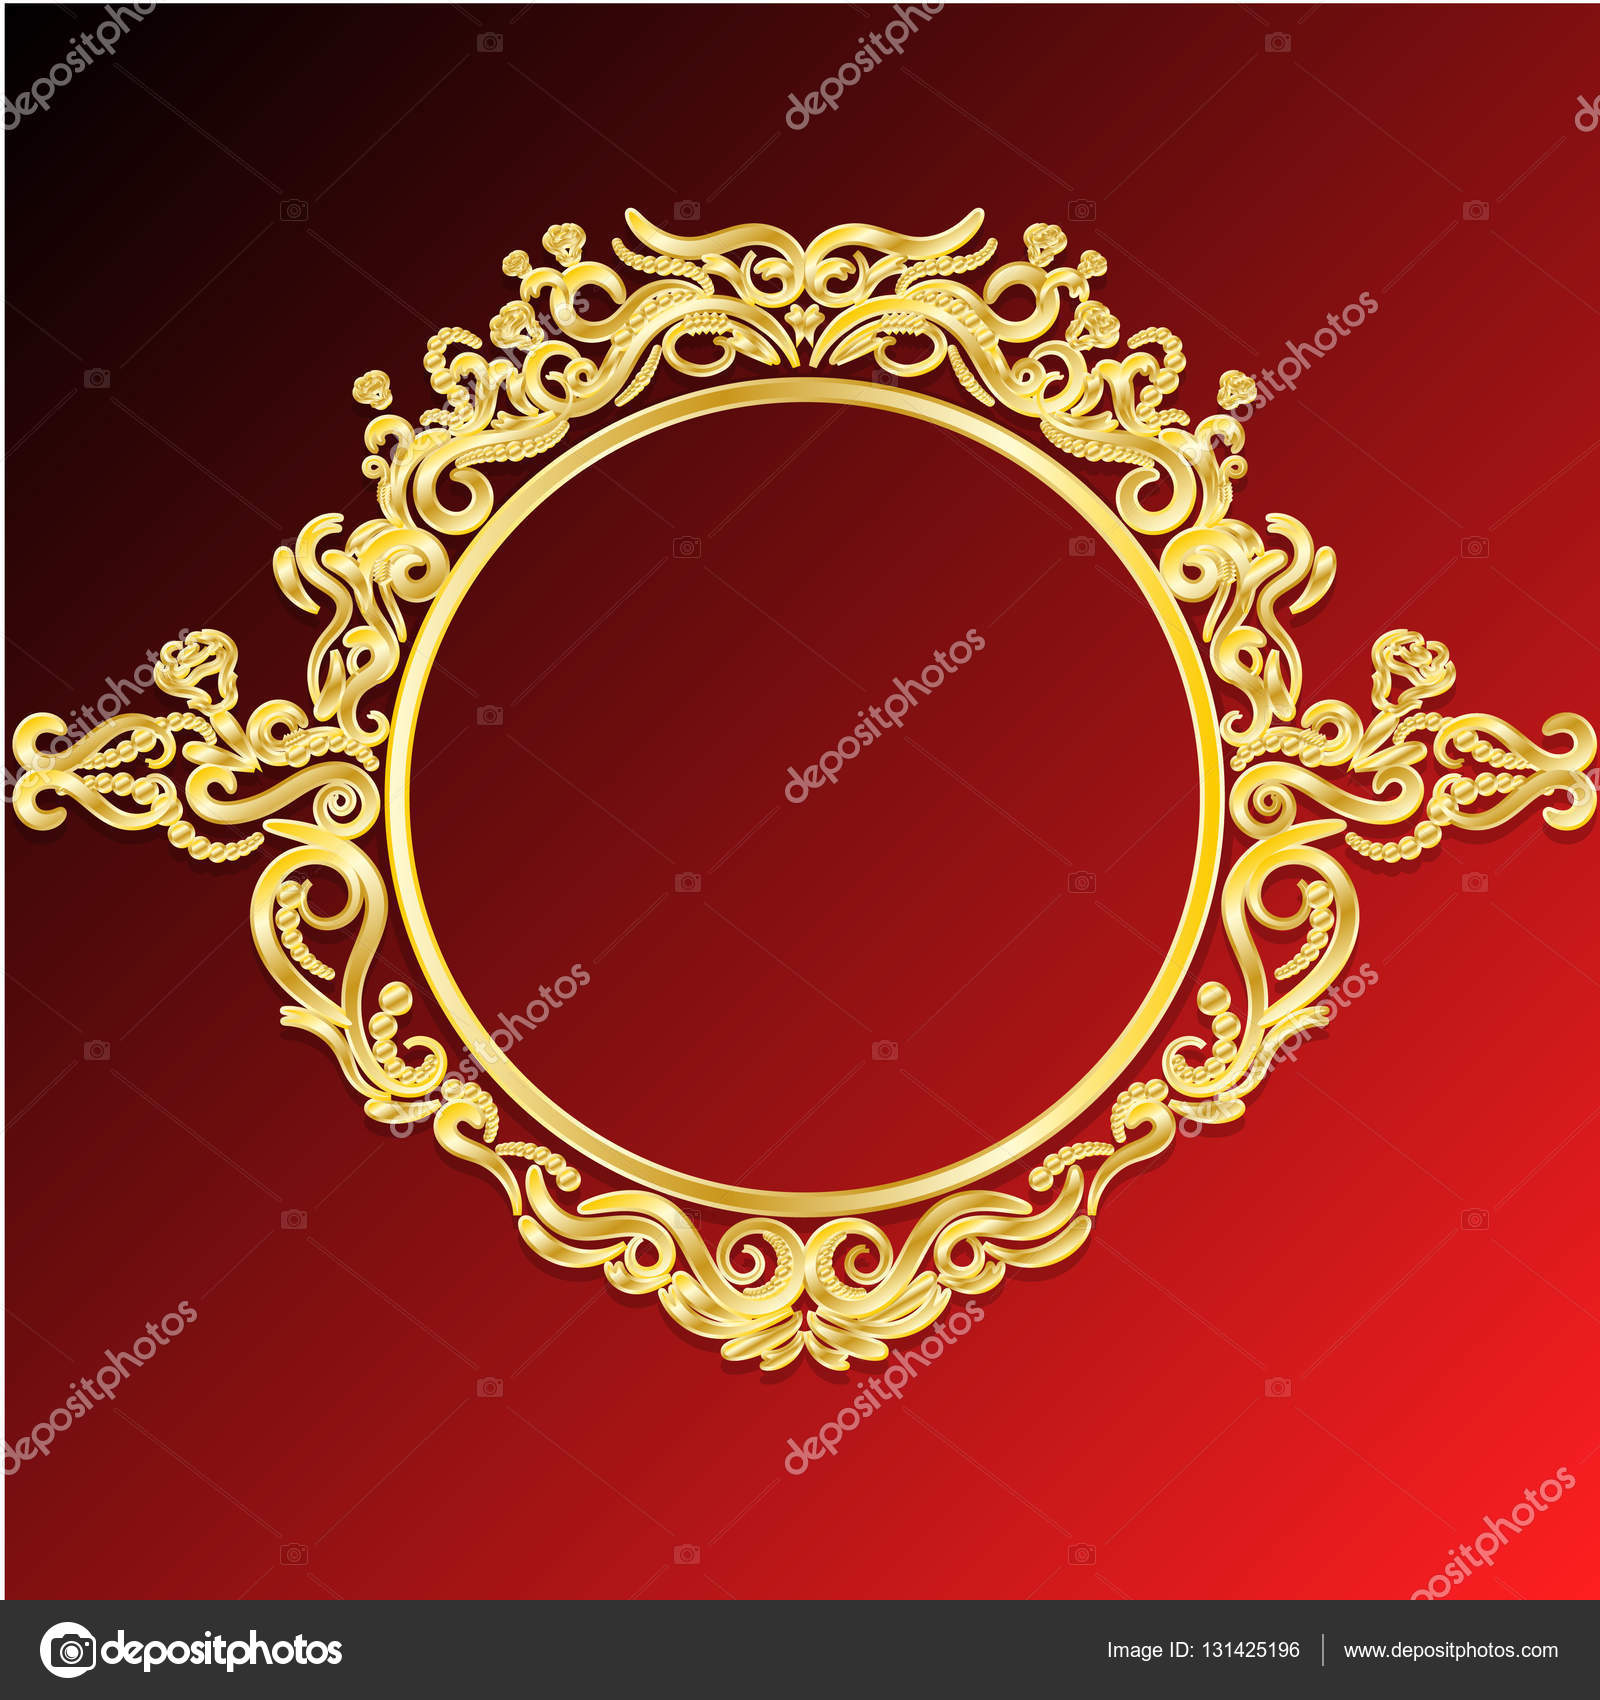 Vector Decorative Frames Retro Vector Gold Frame On Red Background